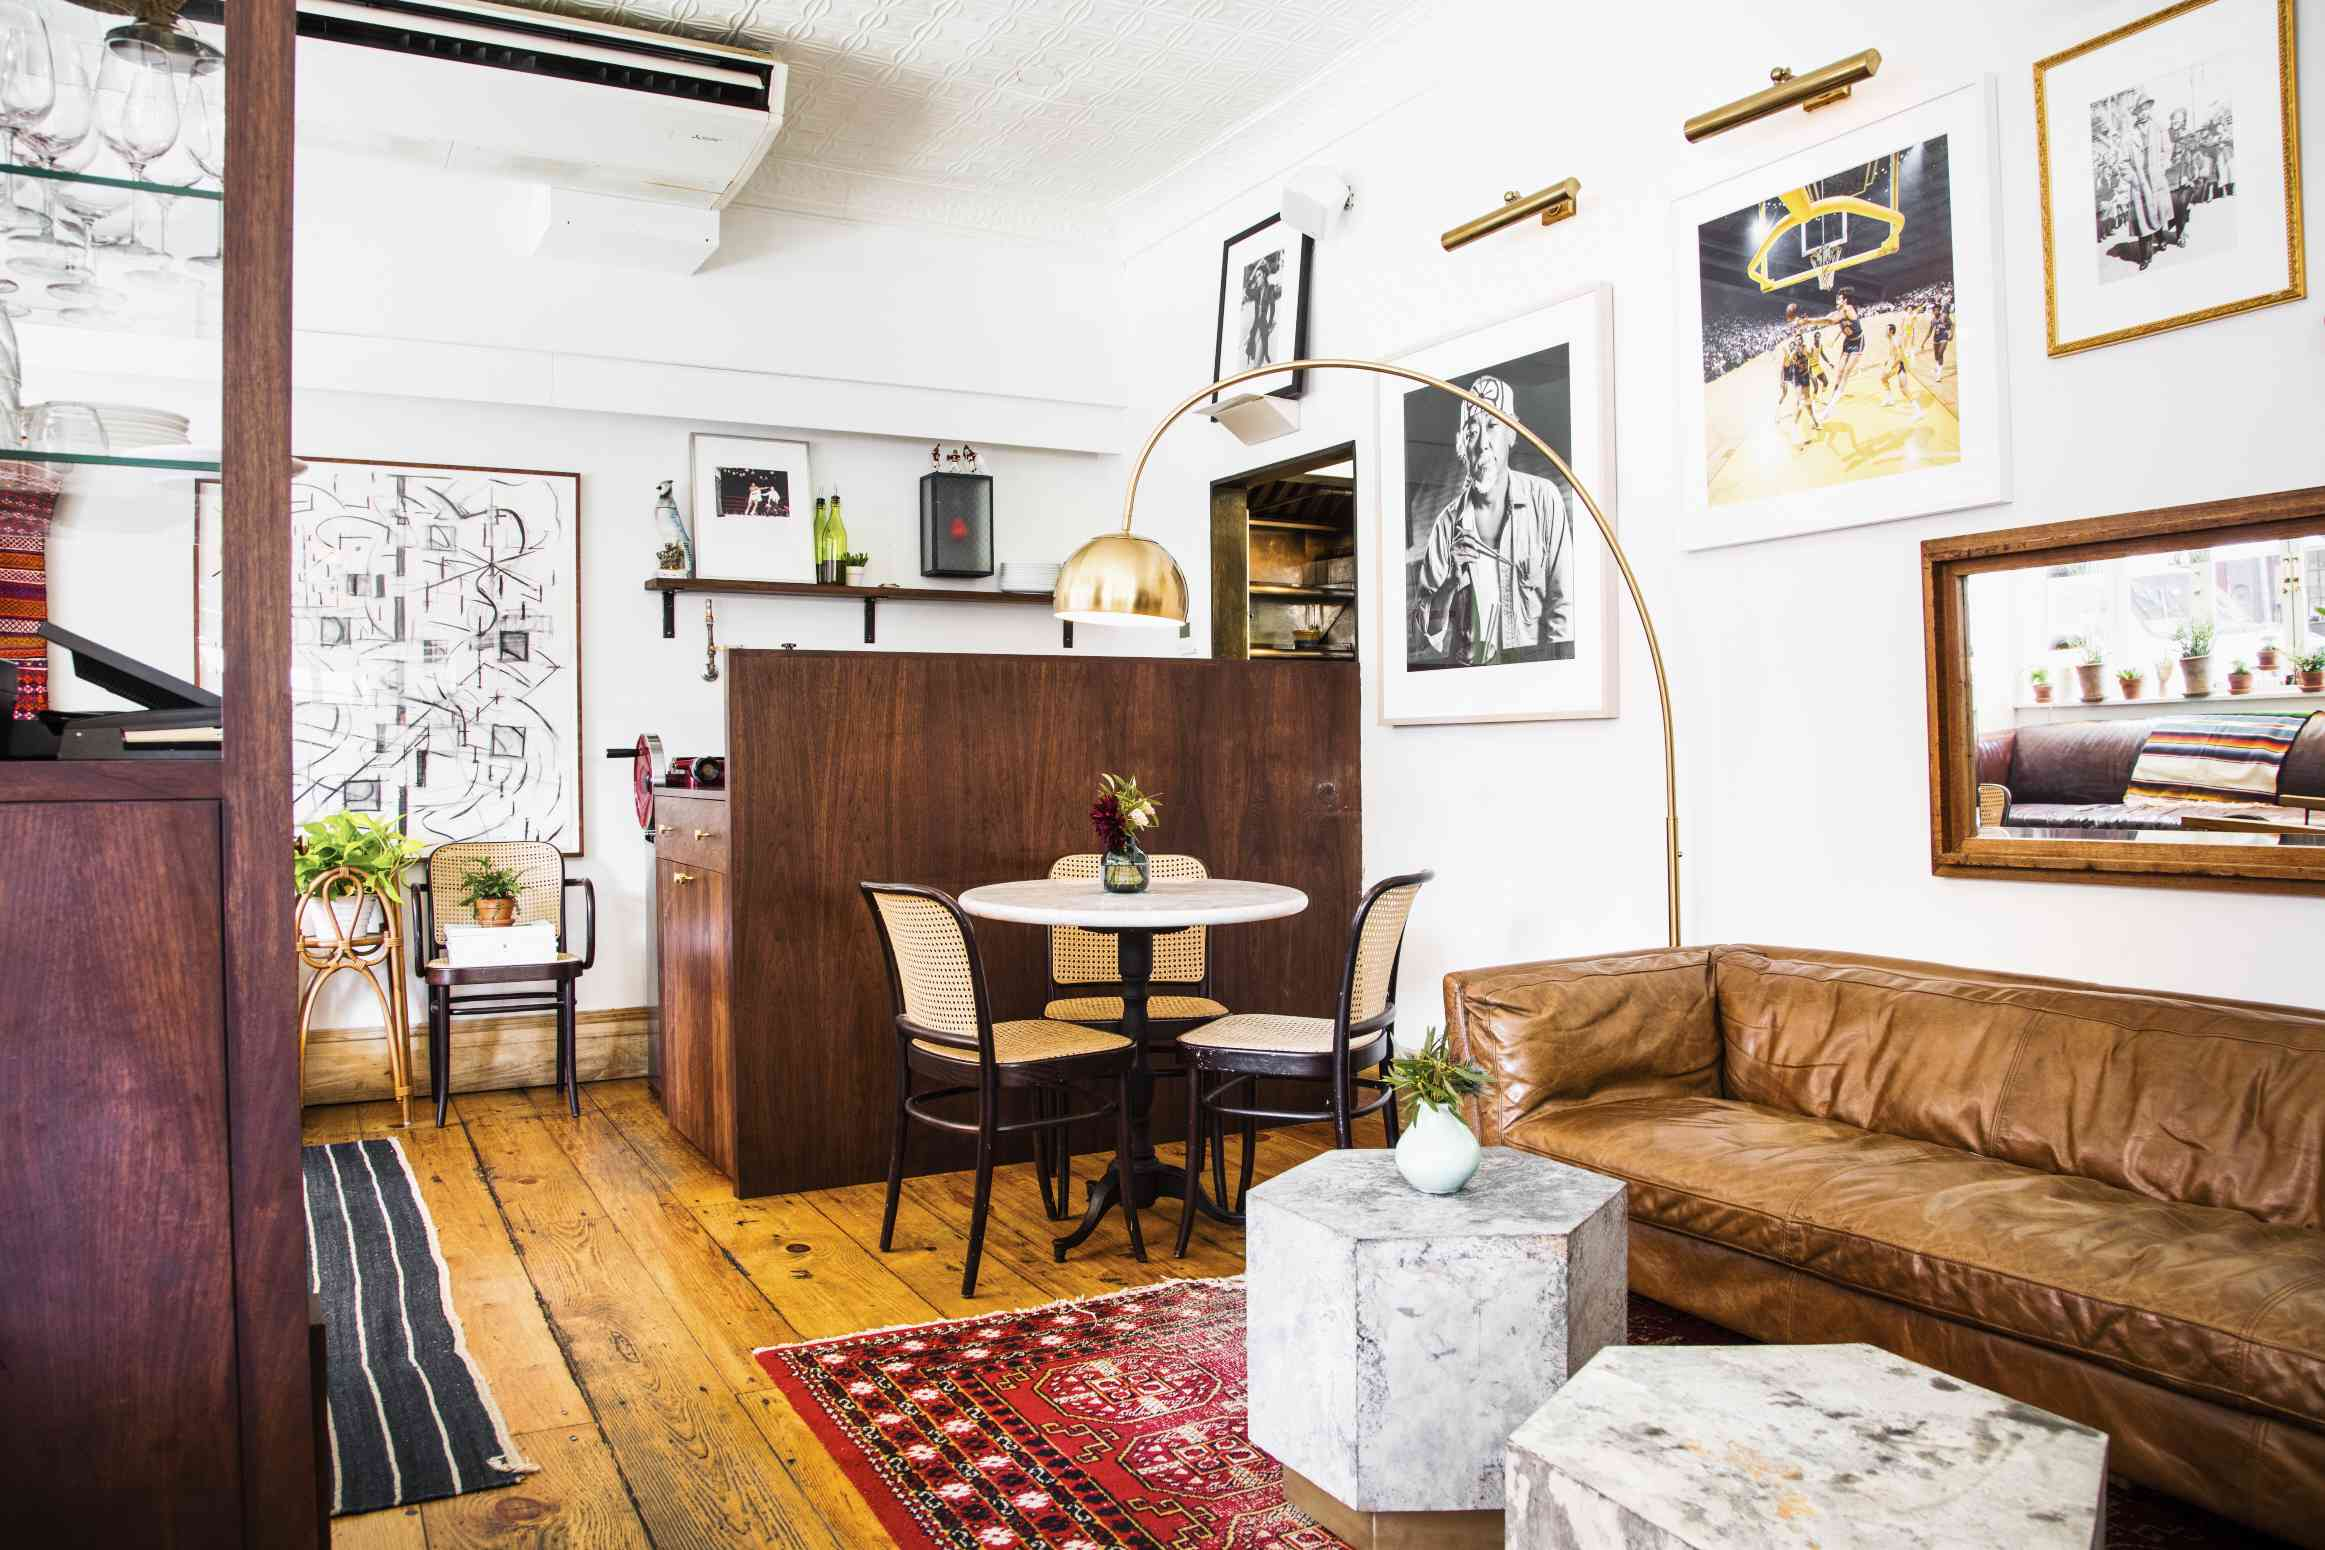 Room with a leather couch, small table with three chairs, area rug, wall hangings, and coffee tables